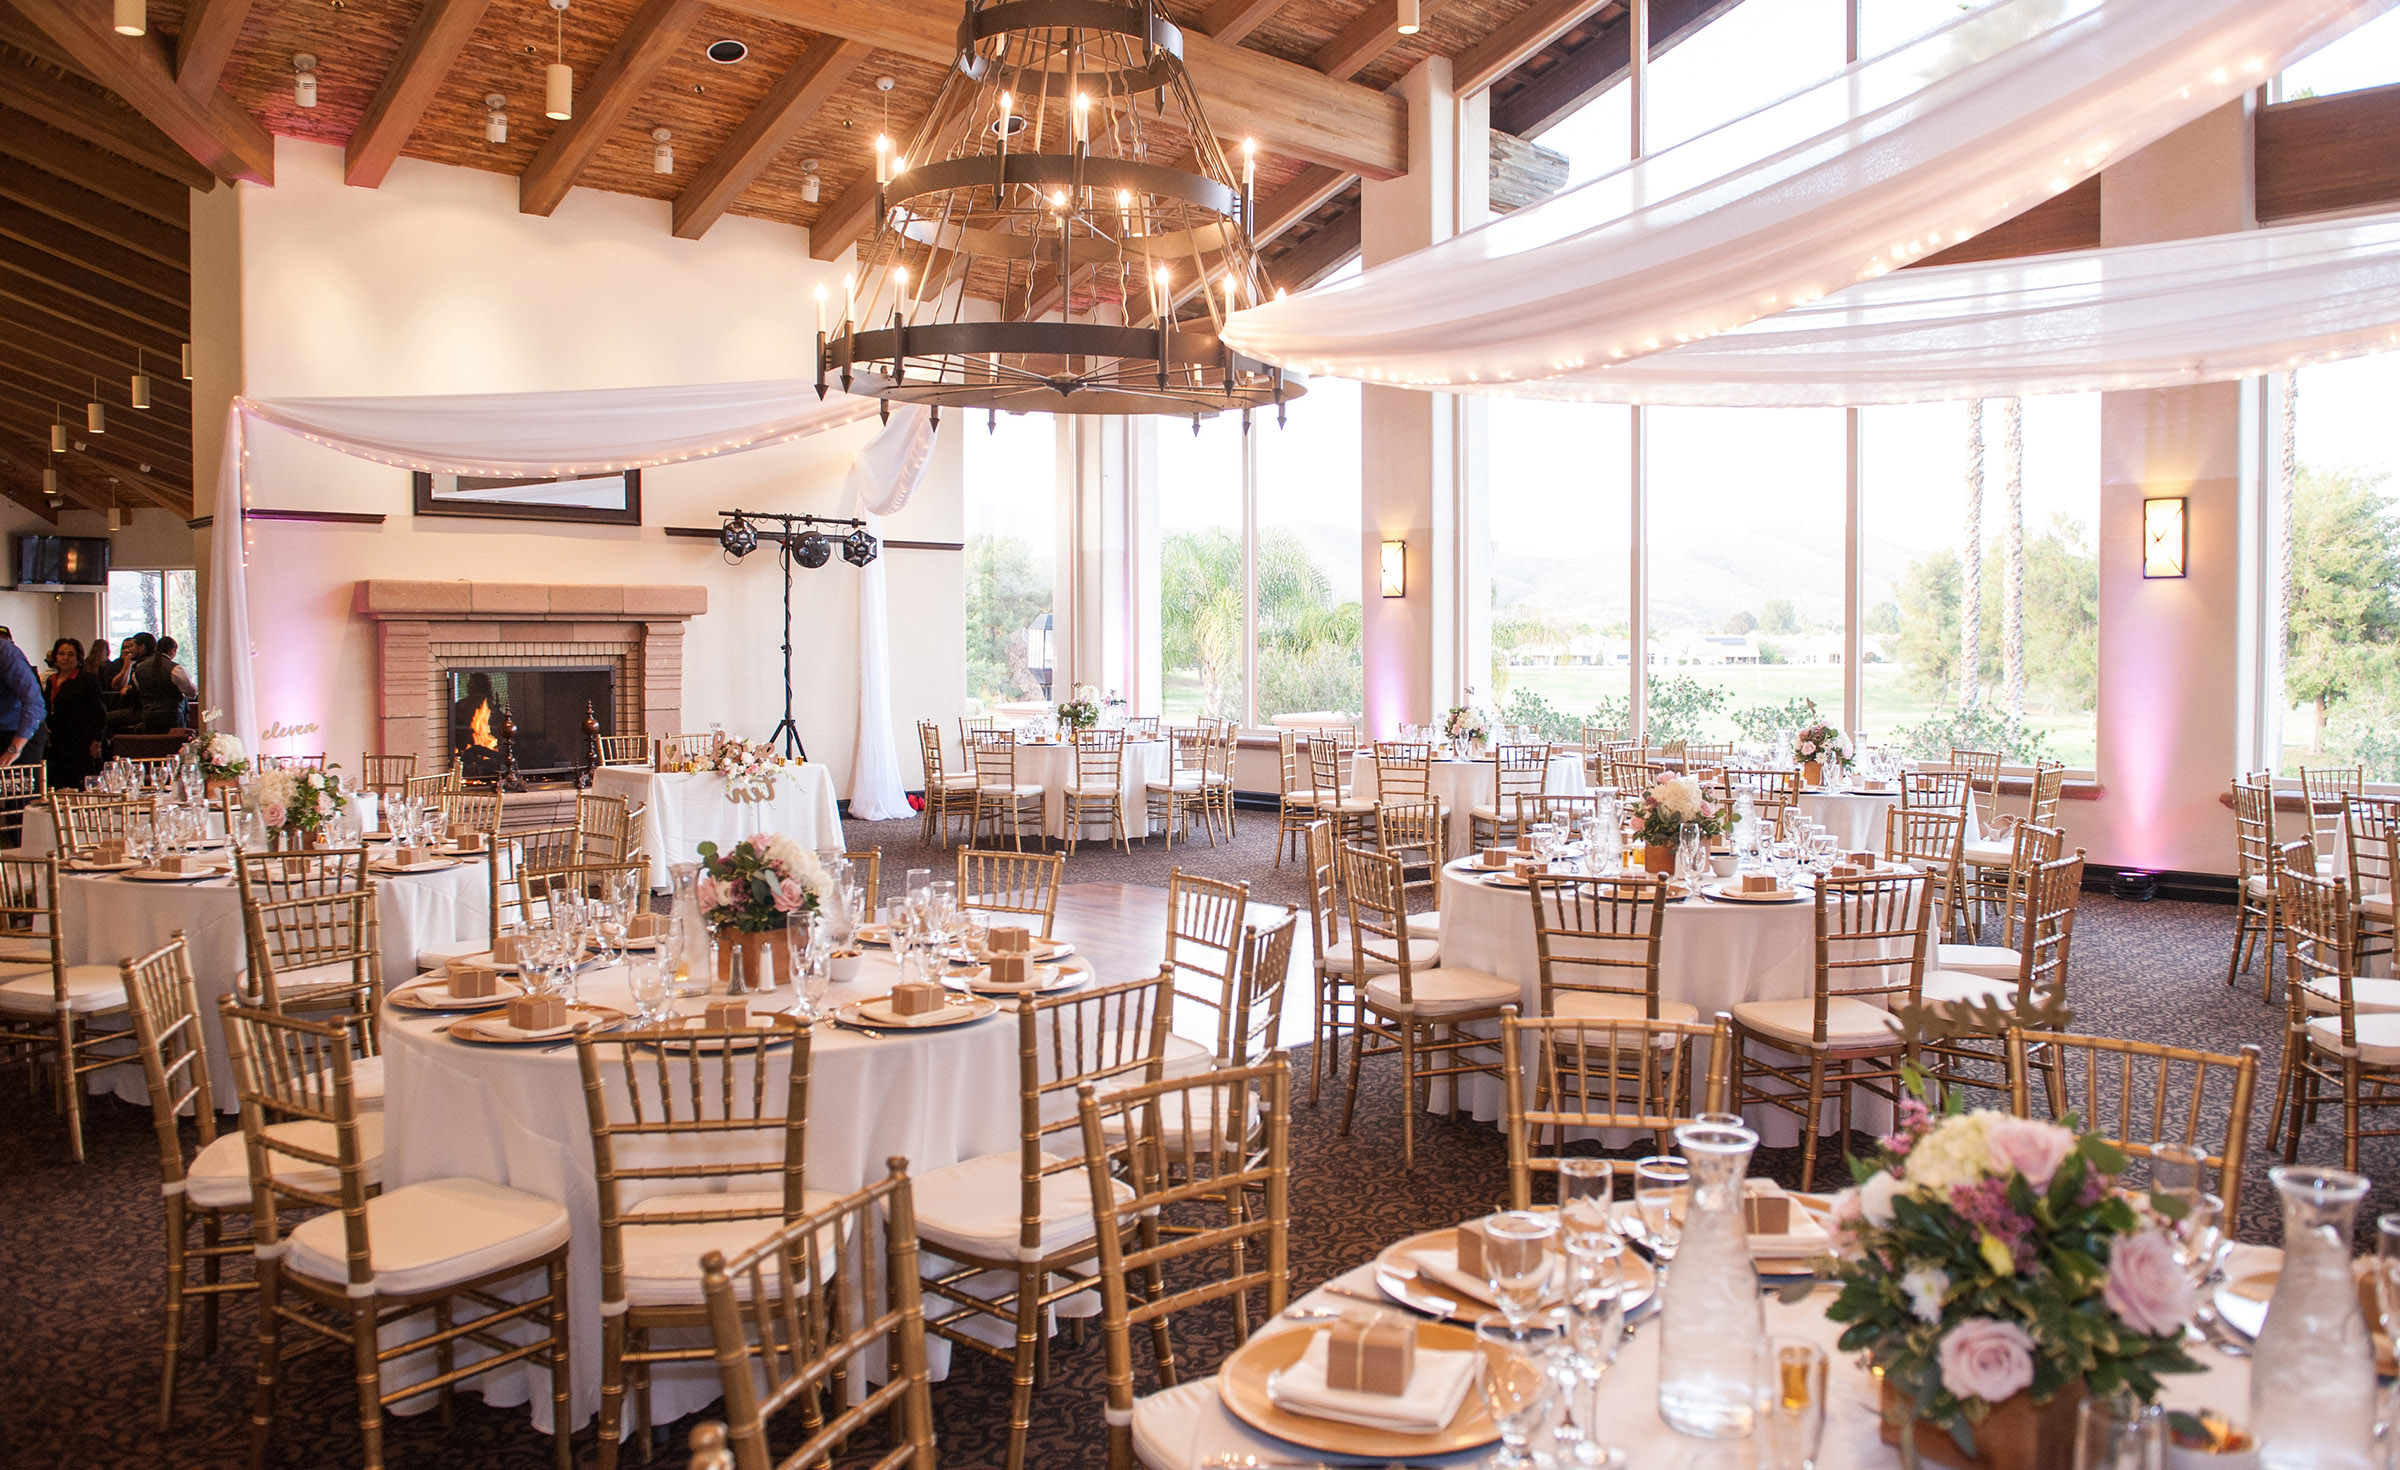 Wedding reception with rustic touches - Menifee Lakes - Menifee, California - Riverside County - Wedgewood Weddings